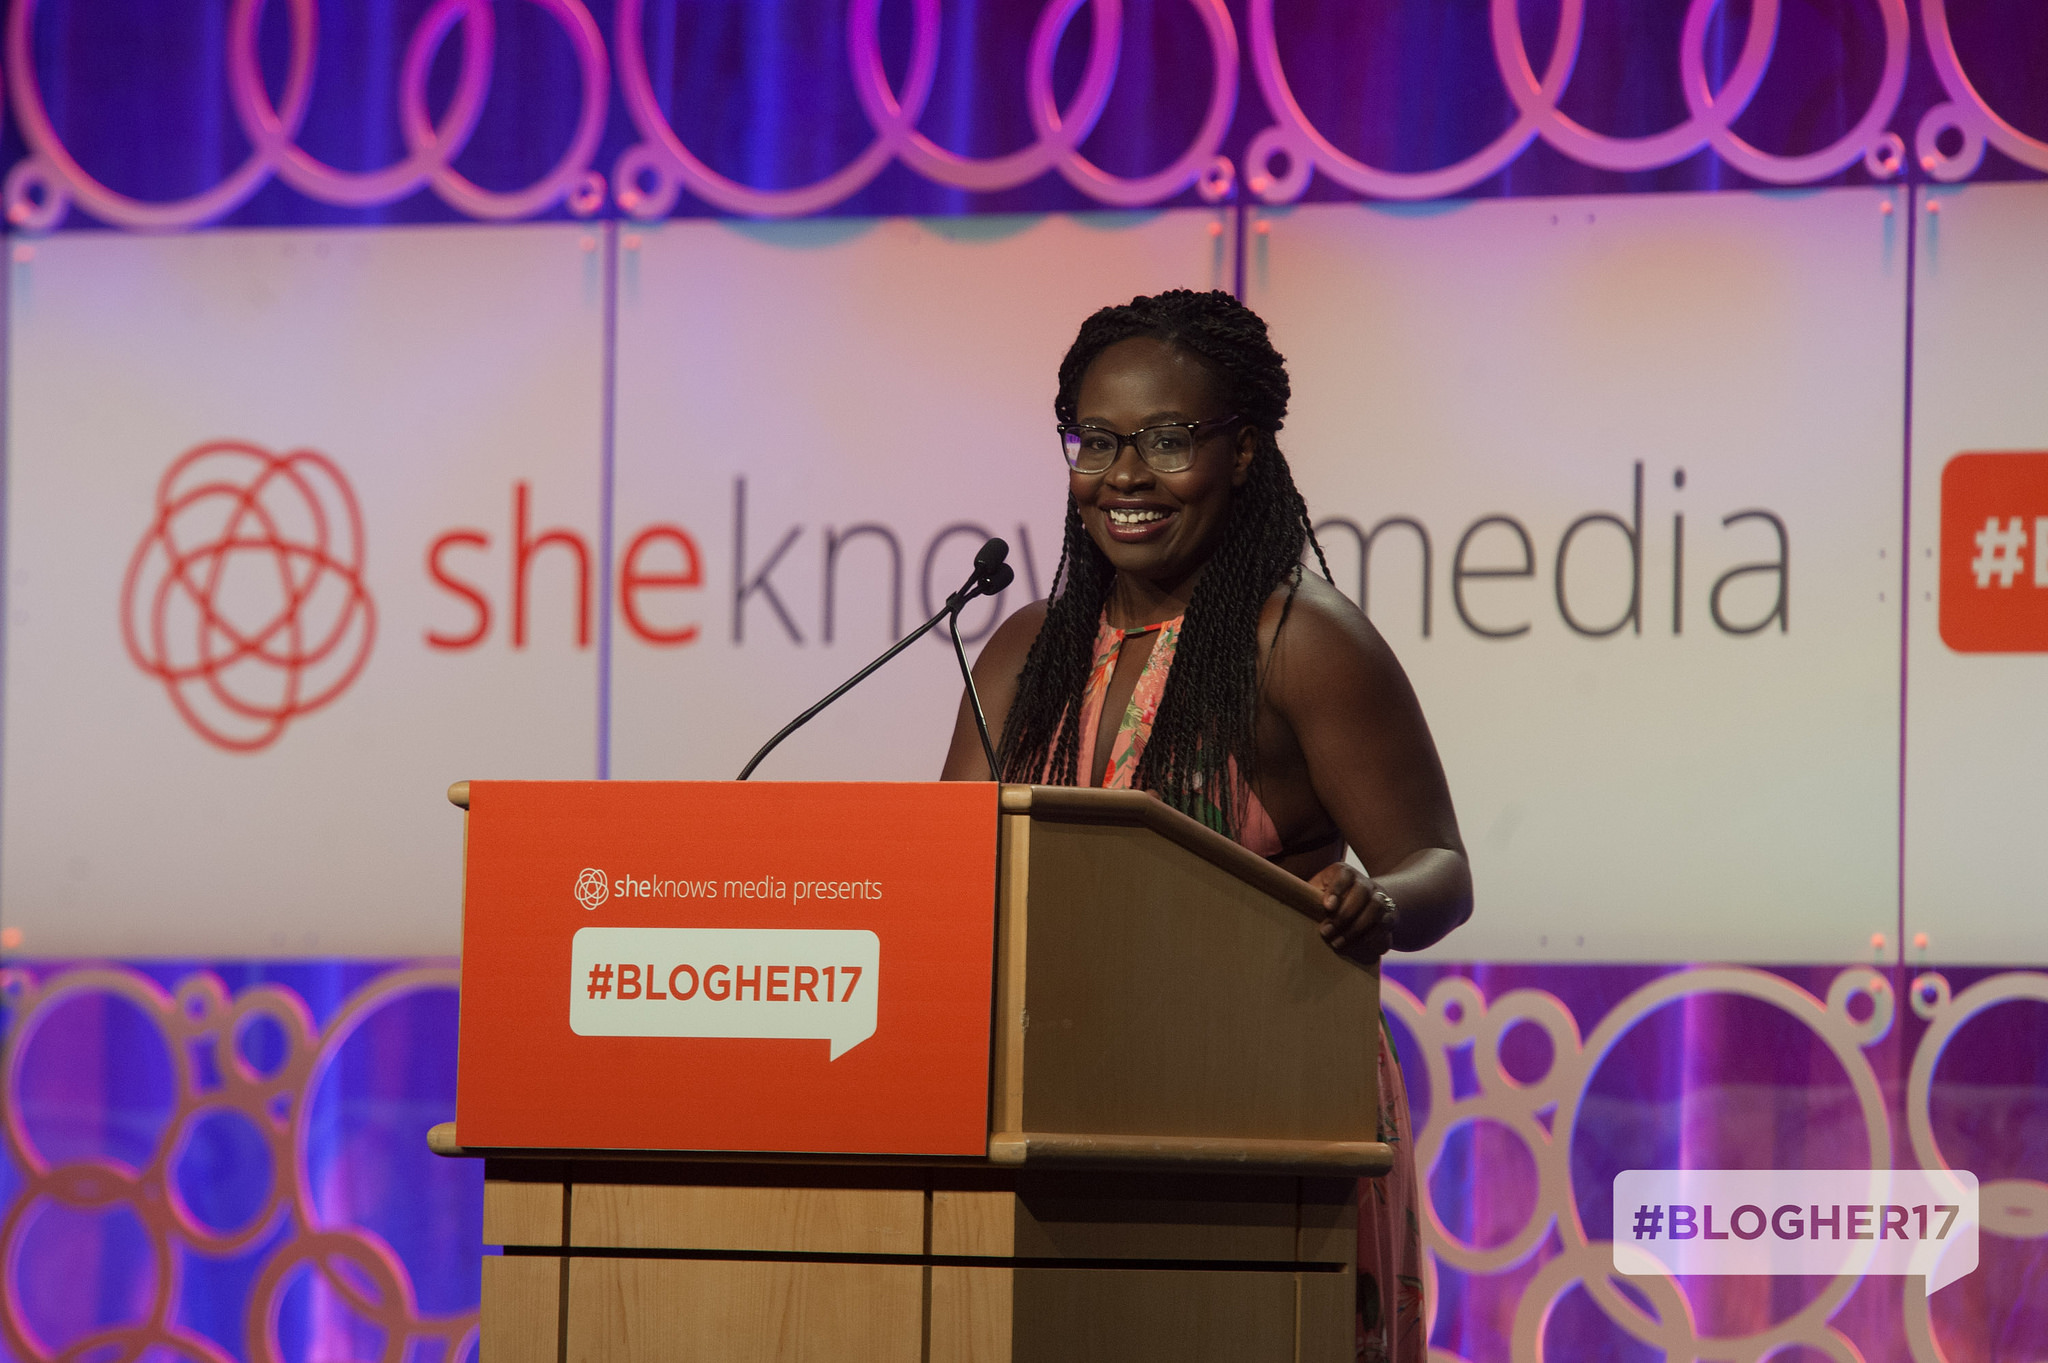 Anthonia Akitunde speaking at the #BlogHer17 conference. Photo credit: SheKnows Media.